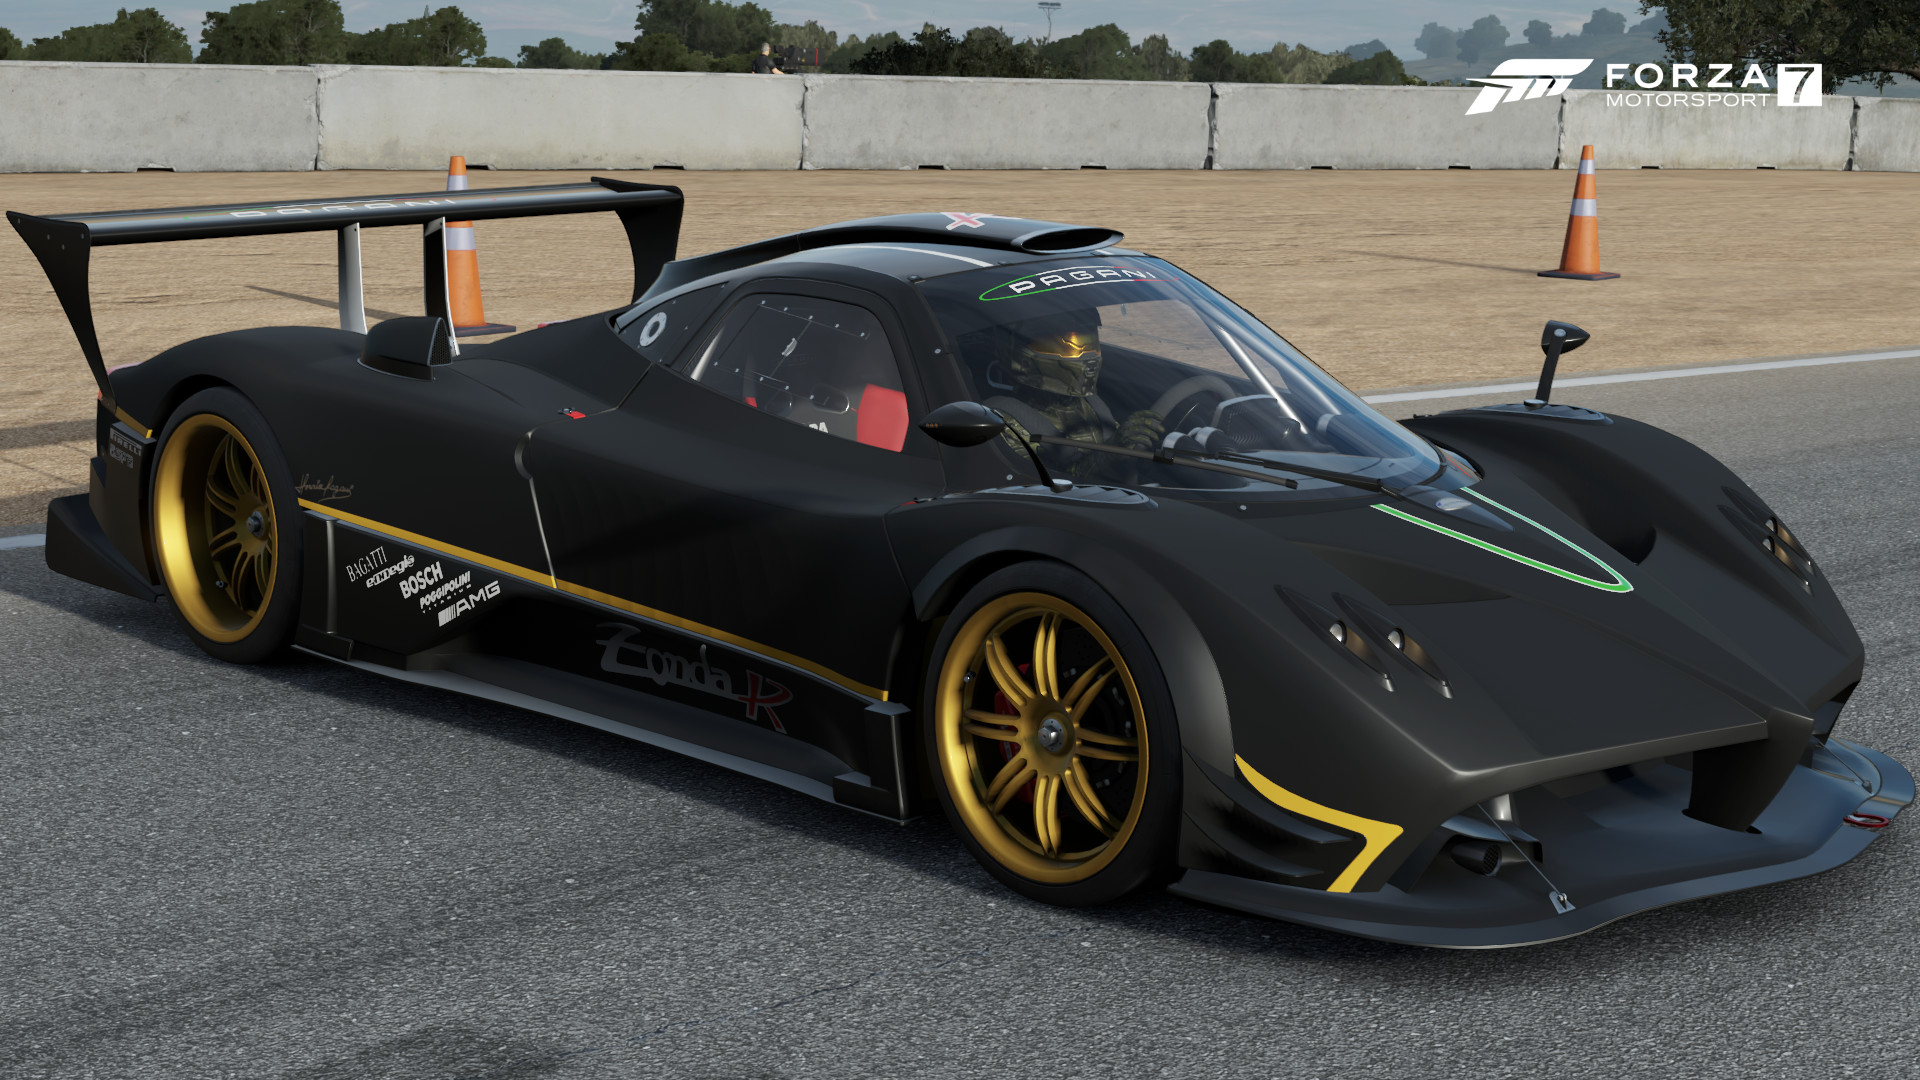 pagani zonda r forza motorsport wiki fandom powered by wikia. Black Bedroom Furniture Sets. Home Design Ideas